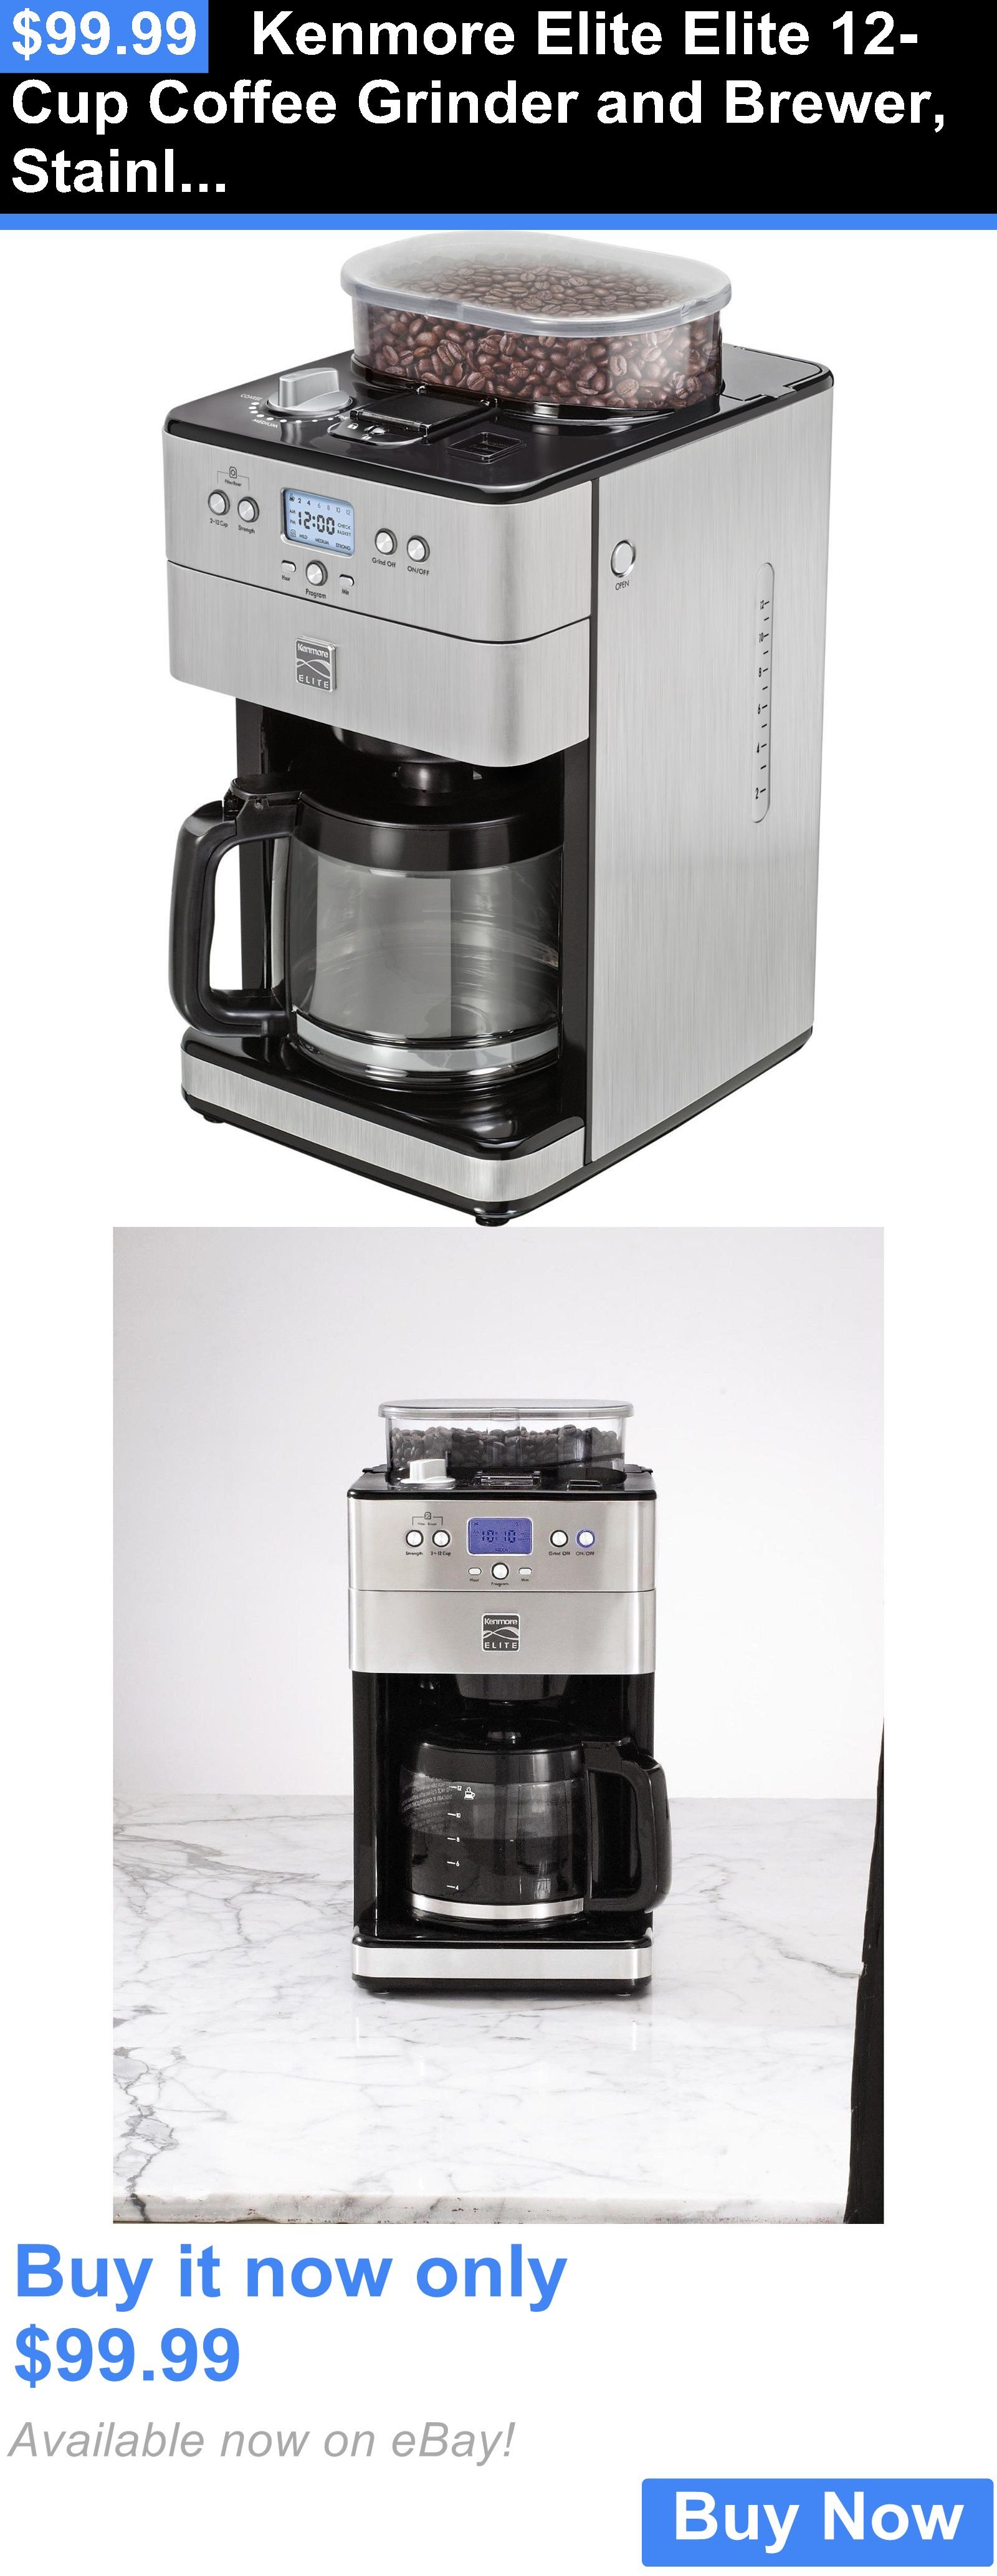 Uncategorized Elite Kitchen Appliances small kitchen appliances kenmore elite 12 cup coffee grinder and brewer stainless